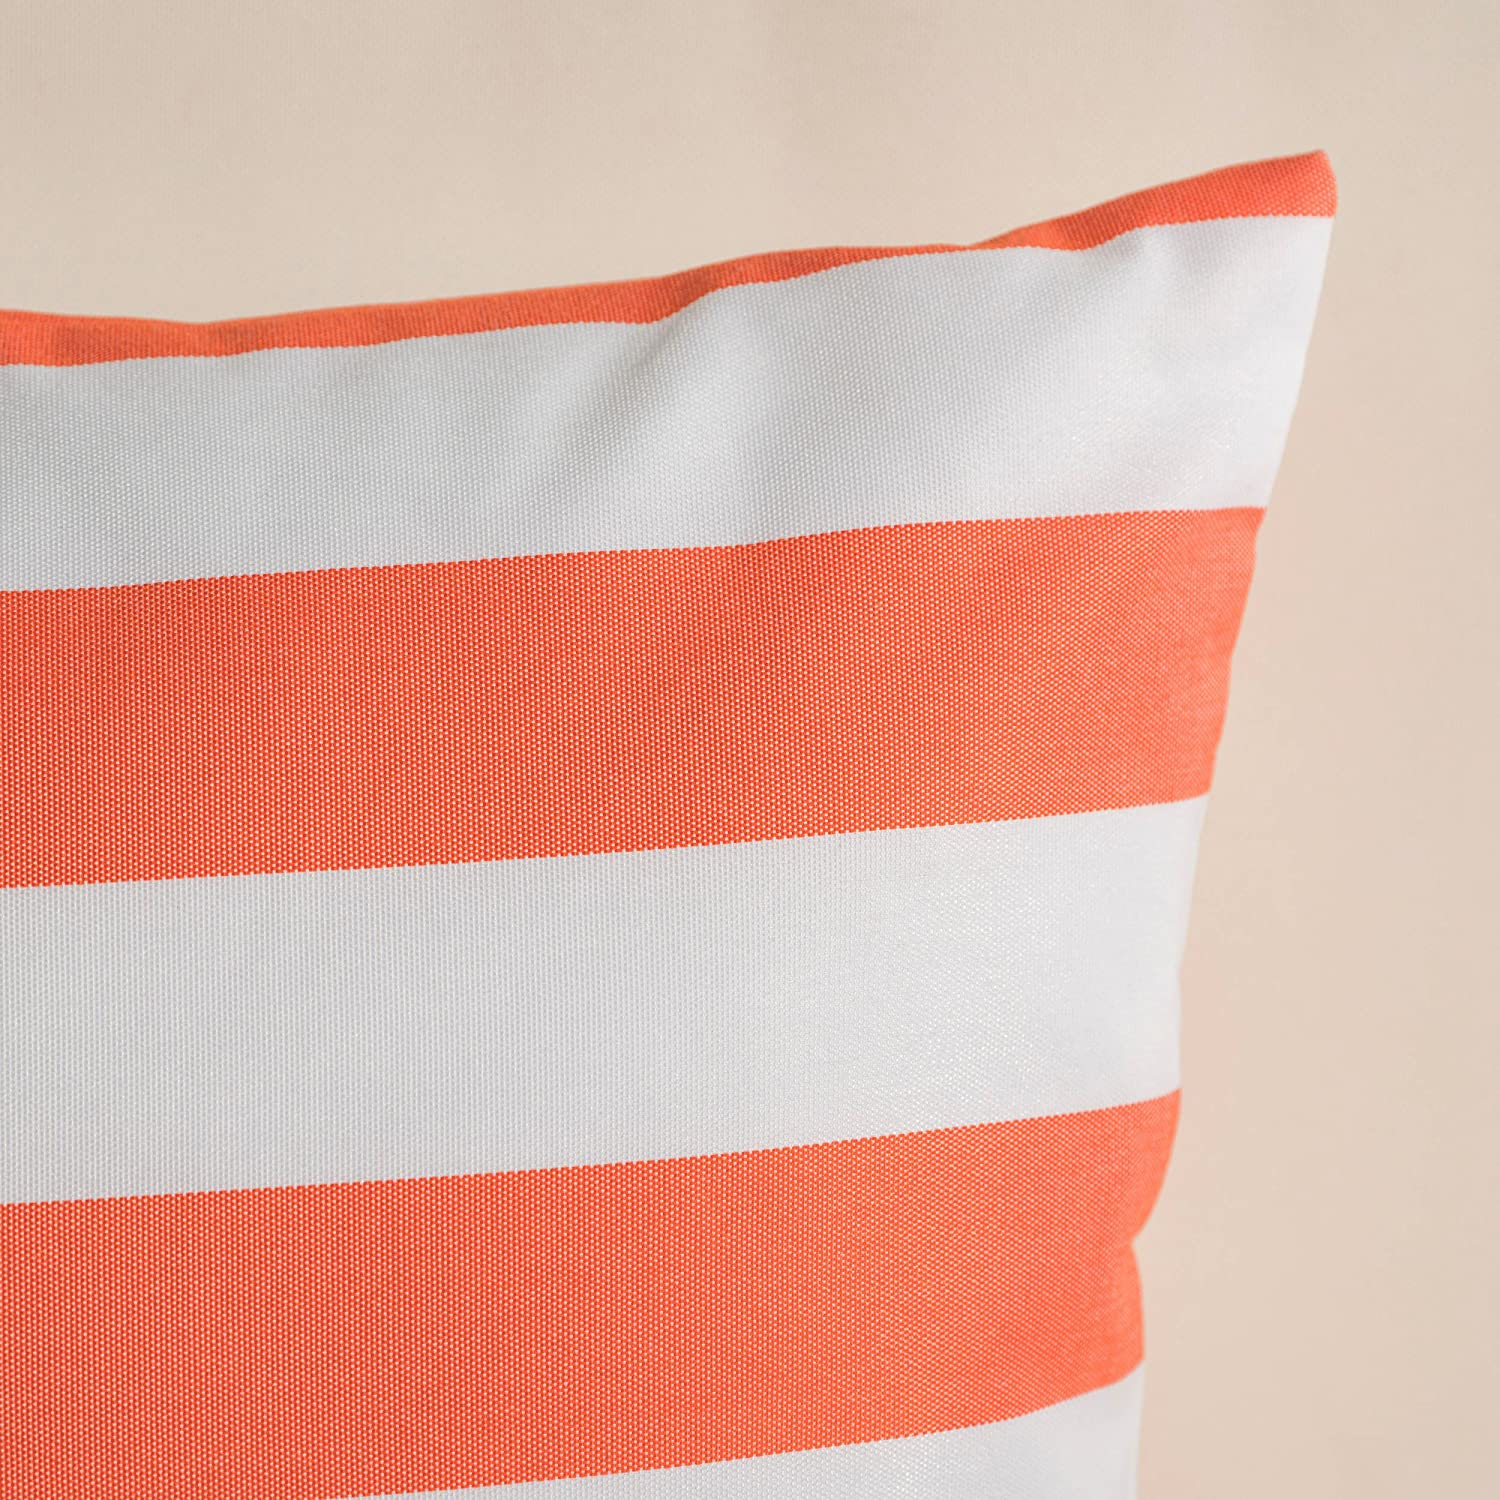 Christopher Knight Home Coronado Outdoor Orange and White Stripe Water Resistant Square Throw Pillow Set of 2